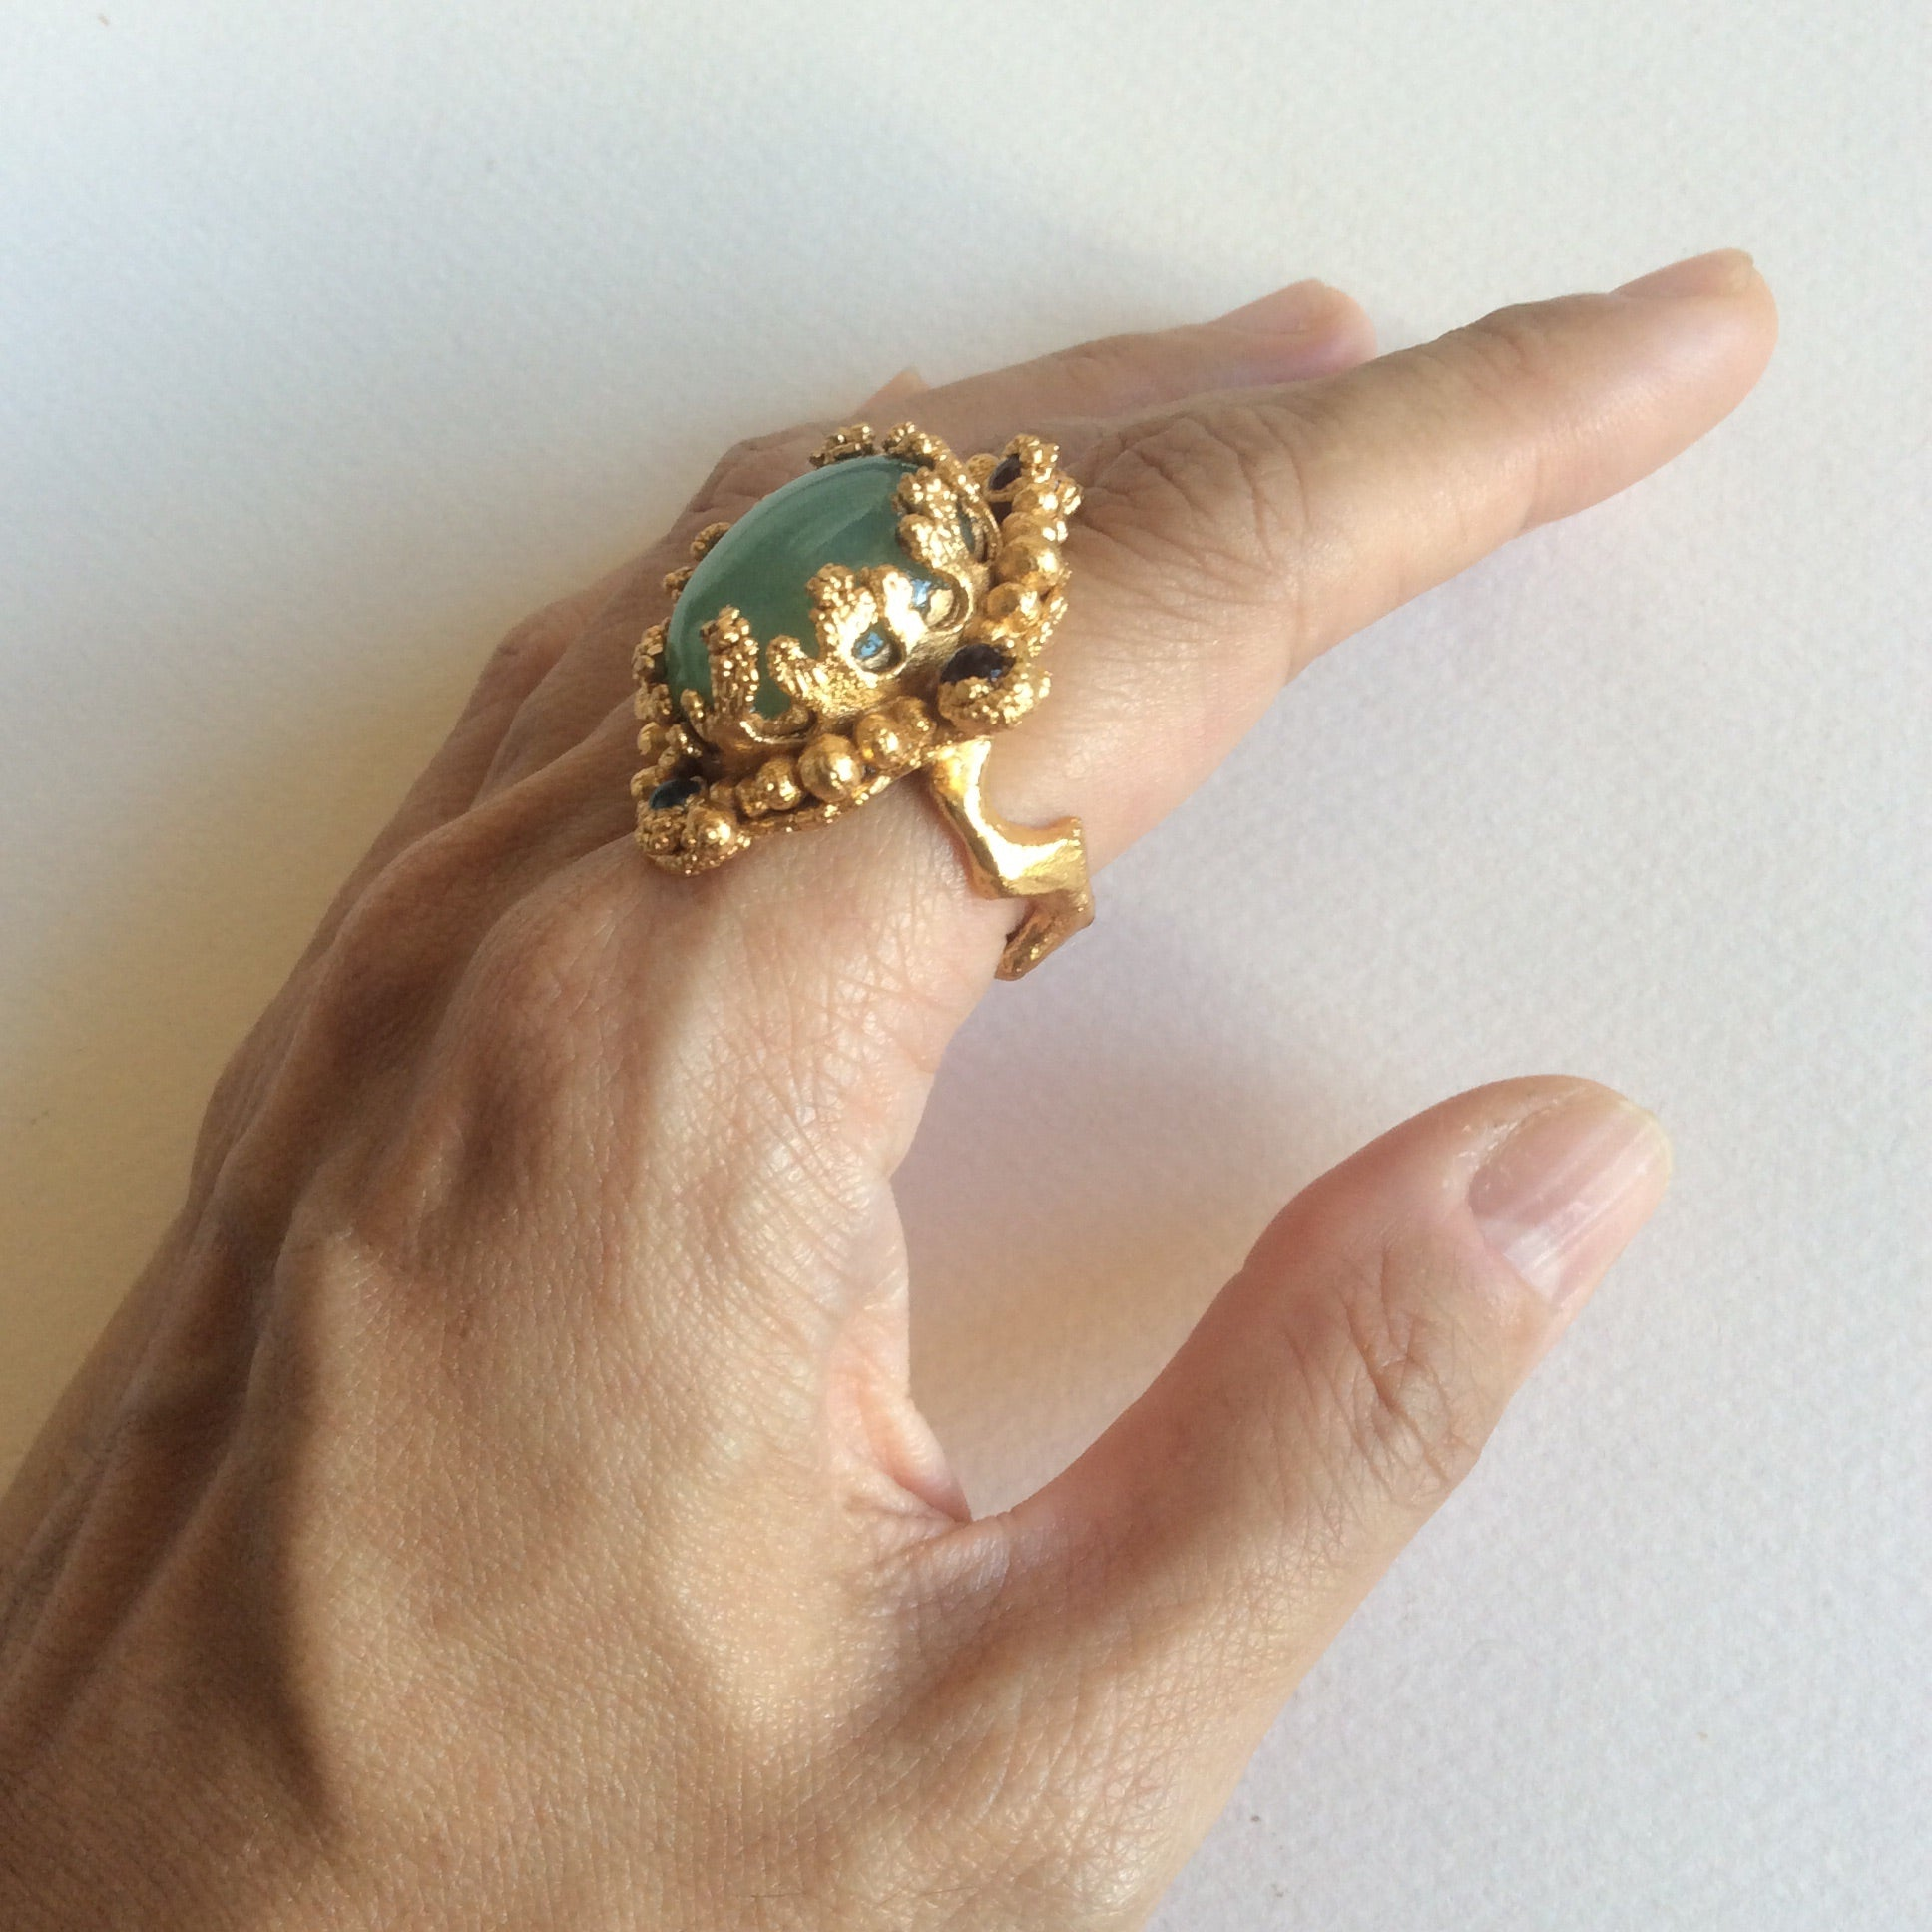 Ancient gold treasure bold statement ring